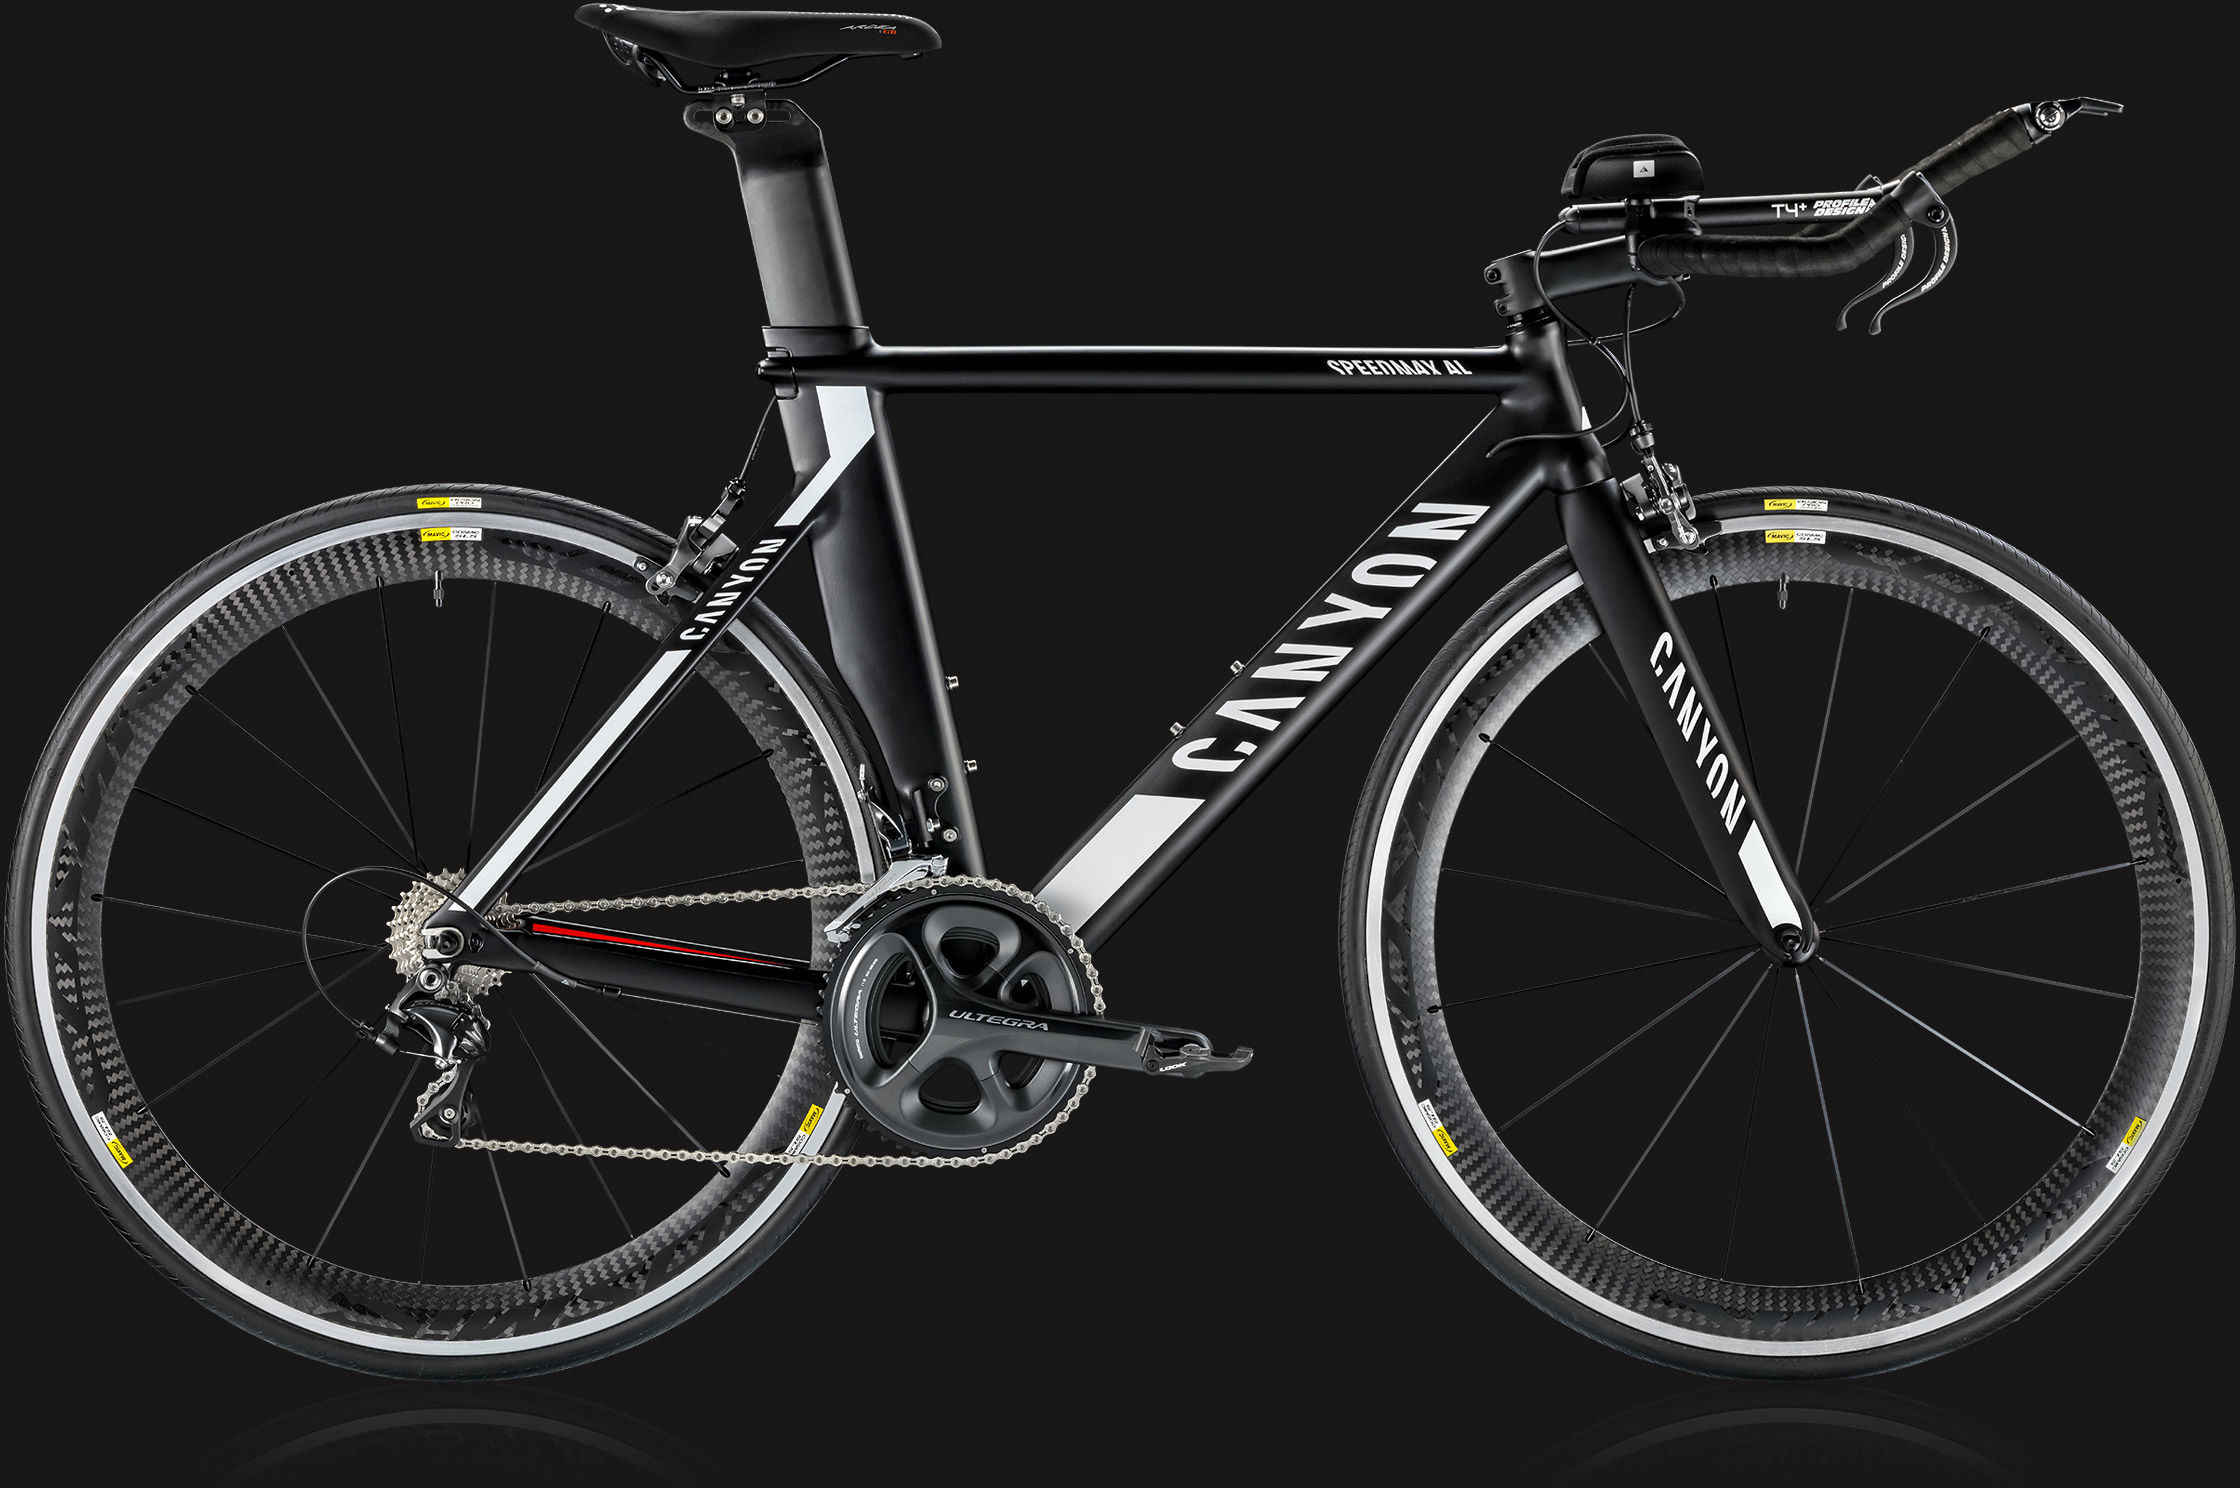 Canyon Speedmax AL 9 0 2015 review - The Bike List